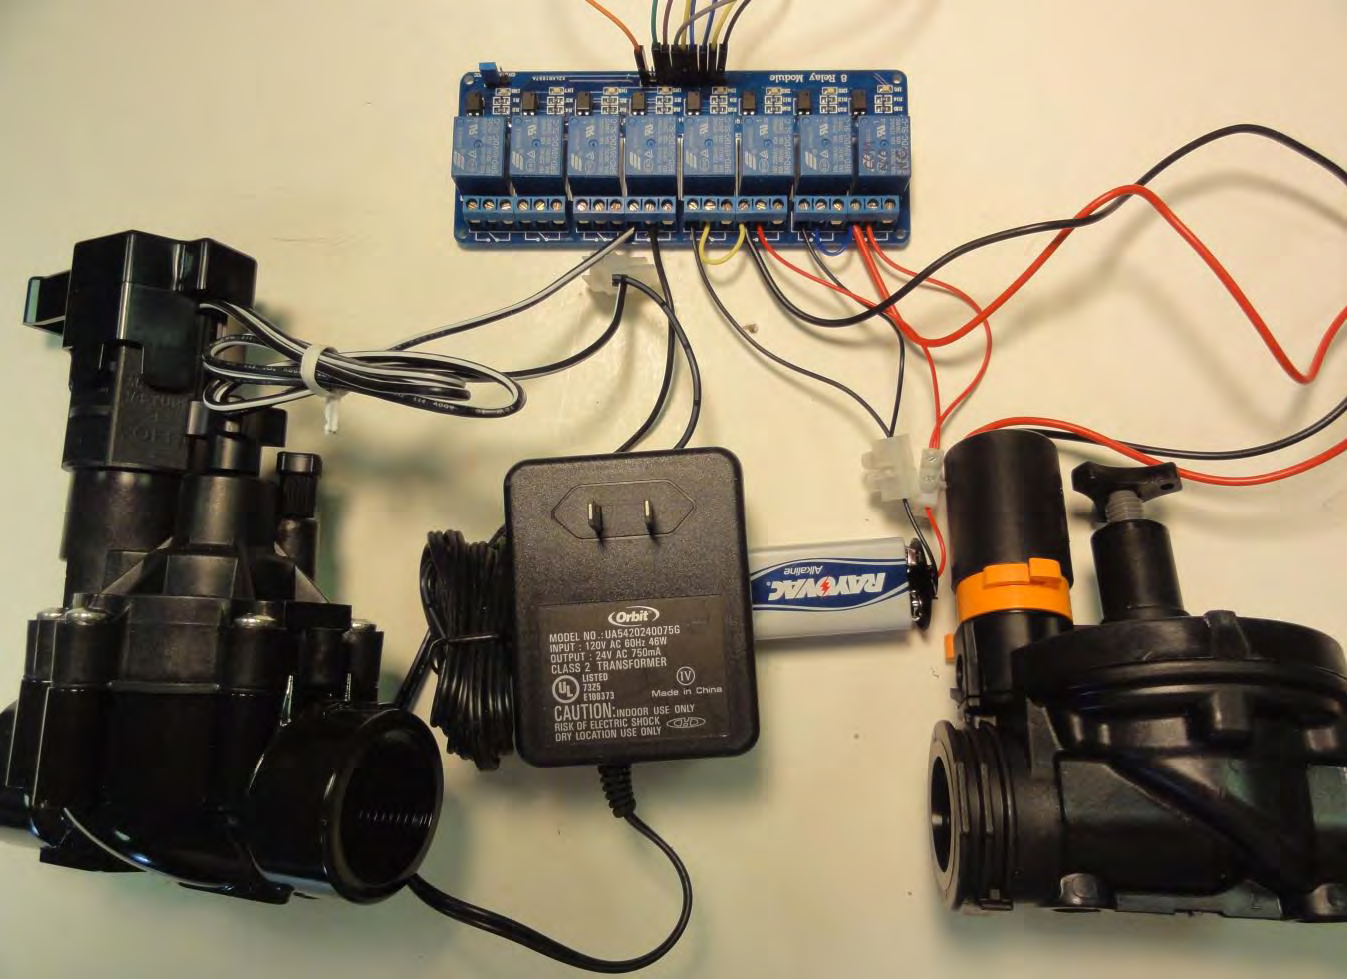 Instructions for building a 4 plot irrigation controller using an